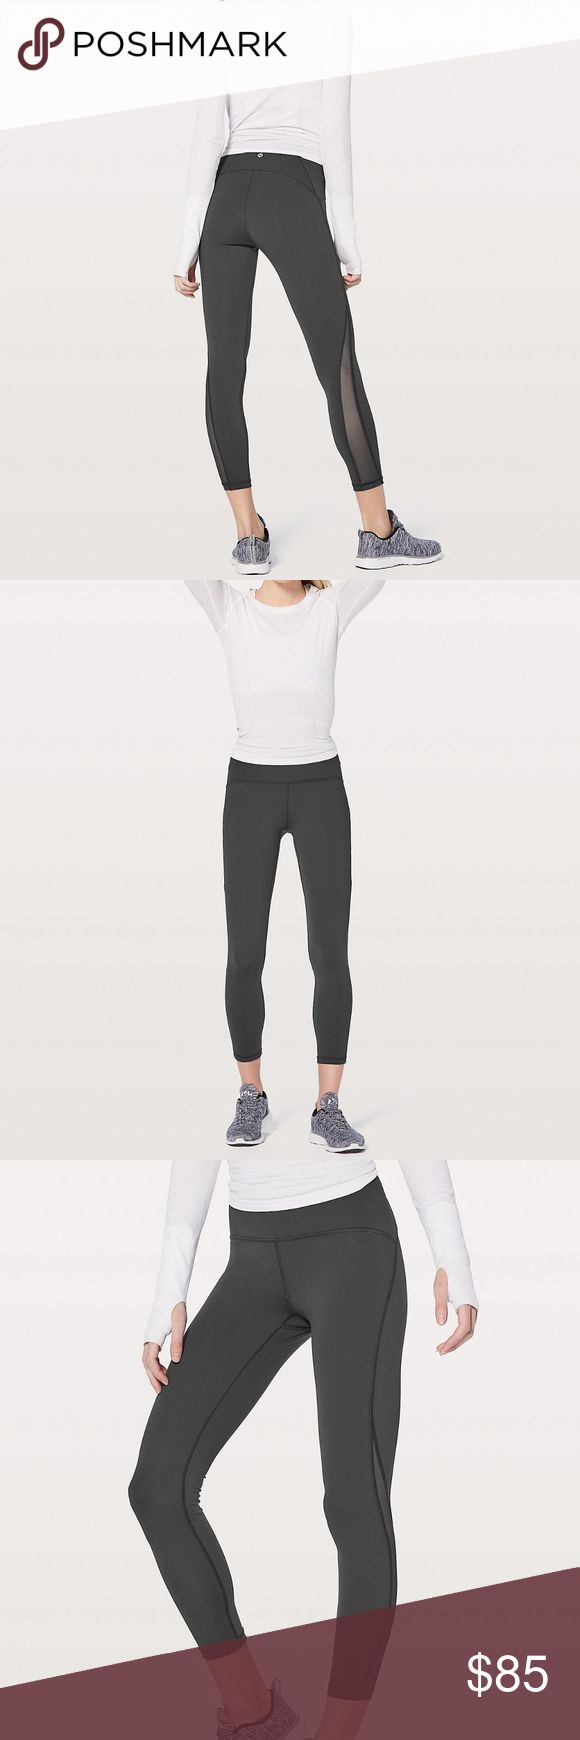 Lululemon Train Times 7/8 Pant size 4 black new First few photos show the leggings in a gray color; the pair for sale is black. Waistband is reinforced and cut on the edge, so it won't dig in or slide down. The Train Times 7/8 in particular sculpt, lift, and have that nice arched seam on the back rear panel, making a nice little rainbow-like arc over your derriere. Brand new, never worn, took the tags off but the wash tag is still on. I have too many pairs and just never got around to…